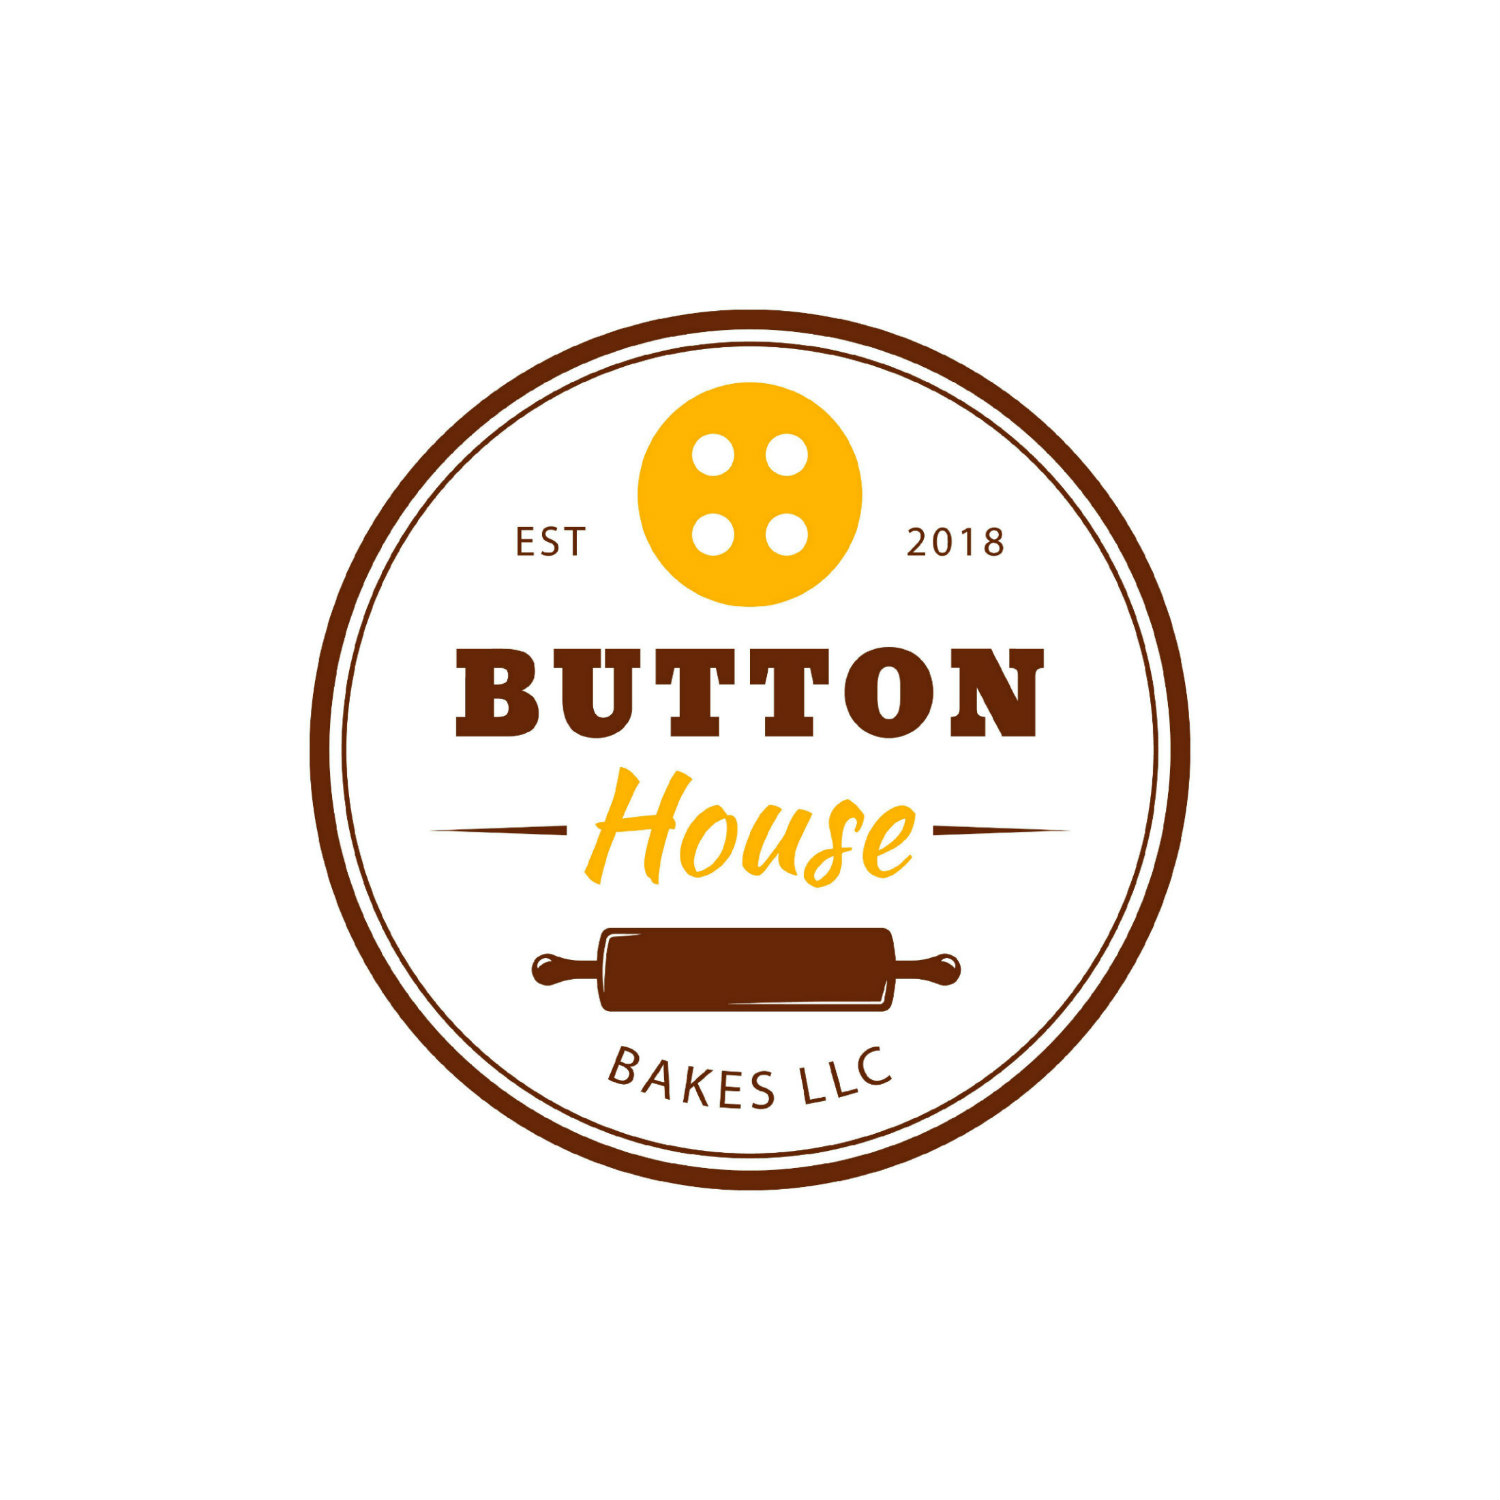 Button House Bakes LLC primary image